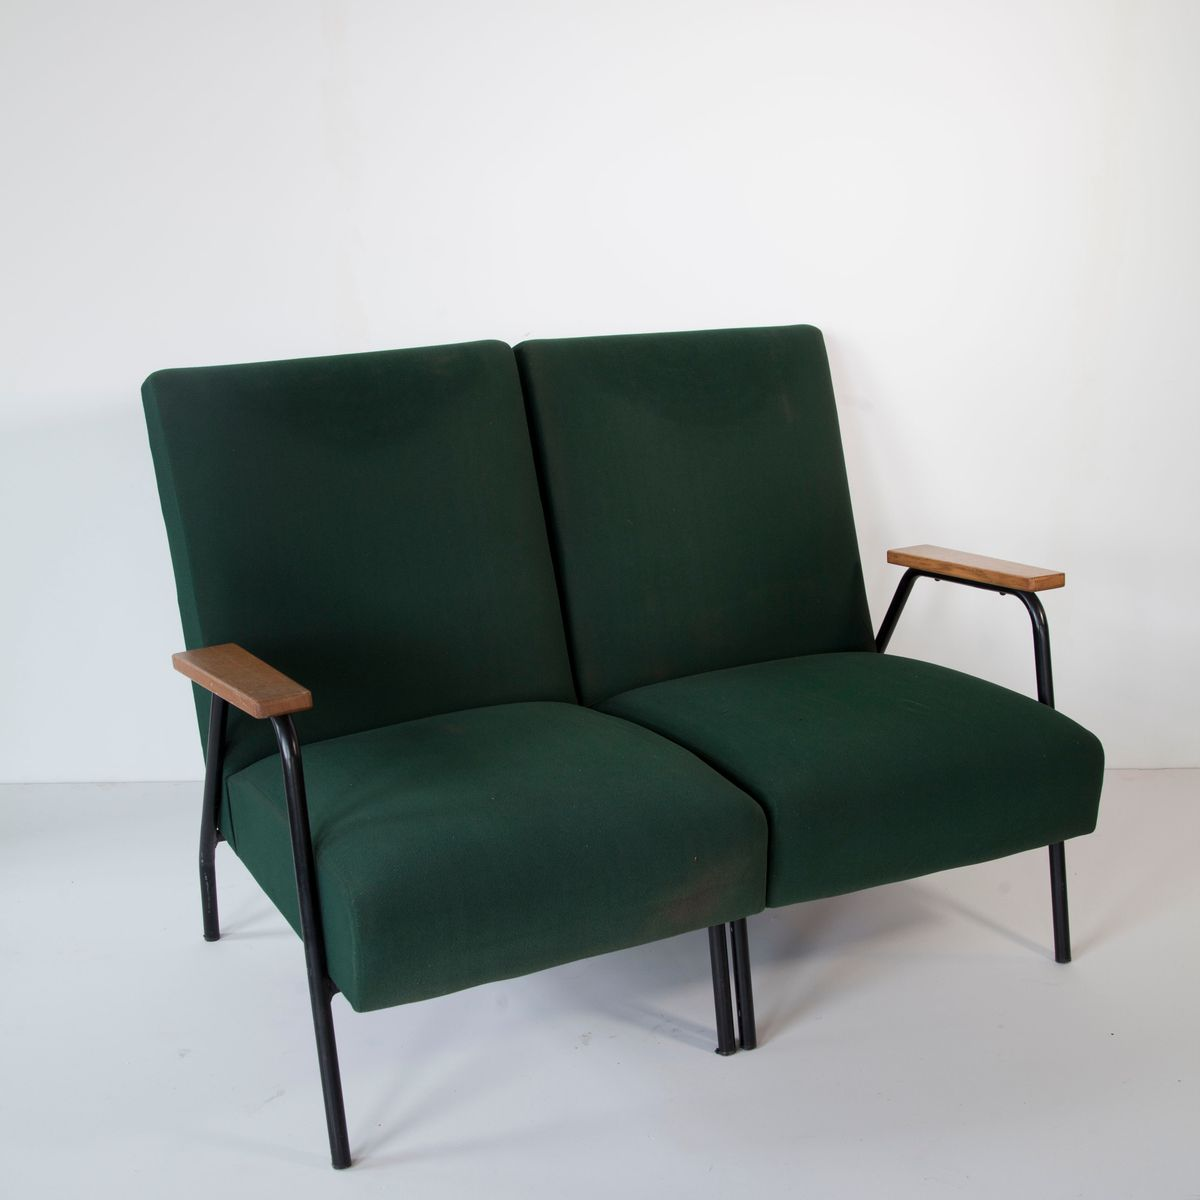 Vintage armchairs by pierre guariche for meurop 1967 set for 2 armchairs for sale